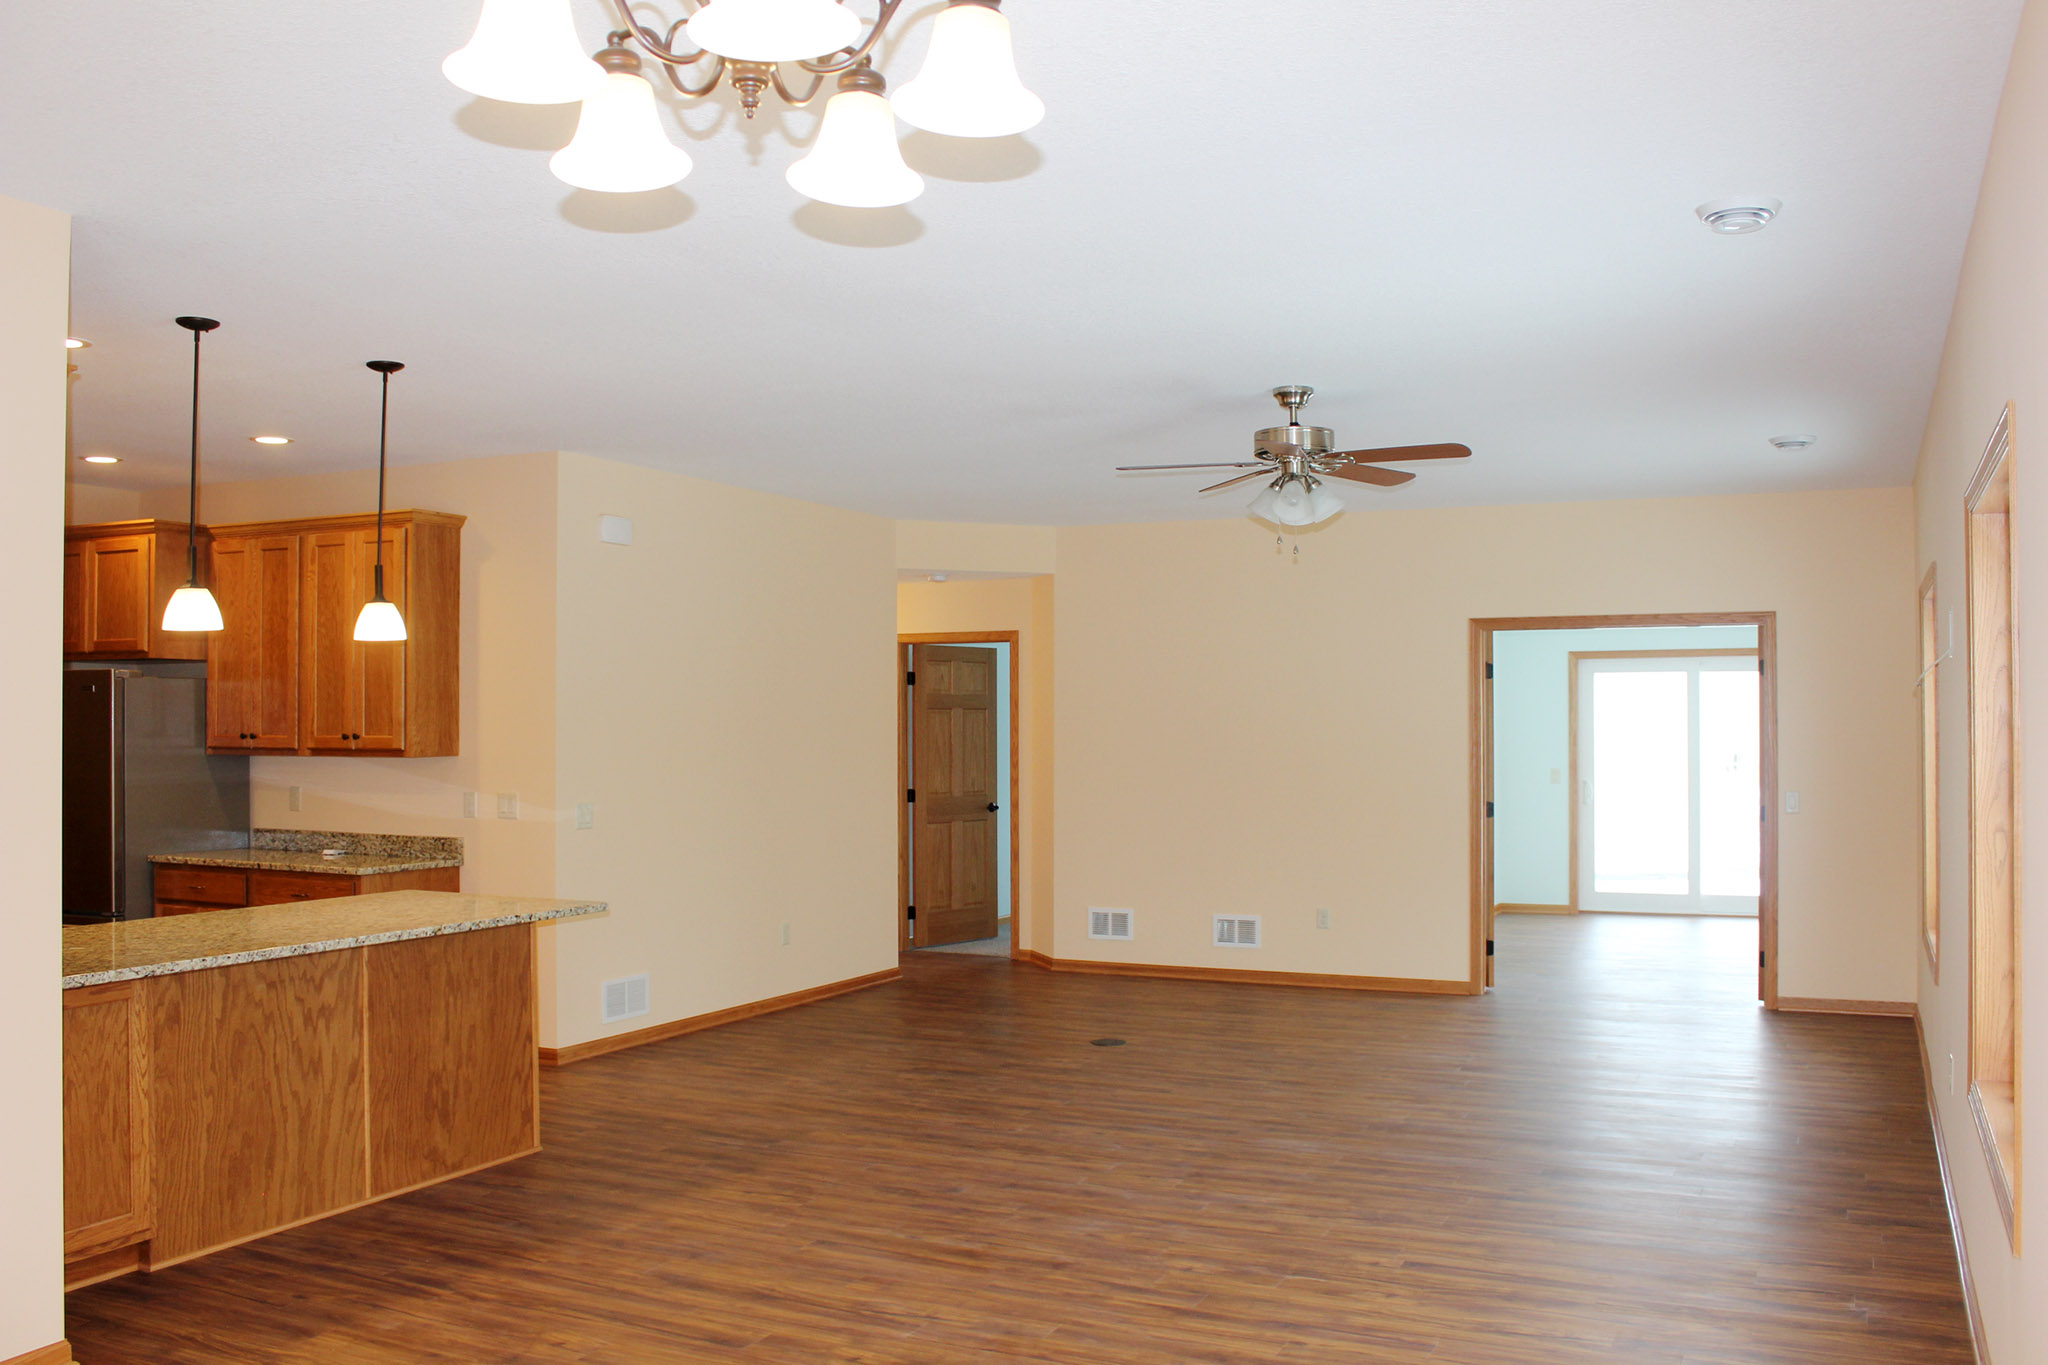 Twin home with spacious open floor plan